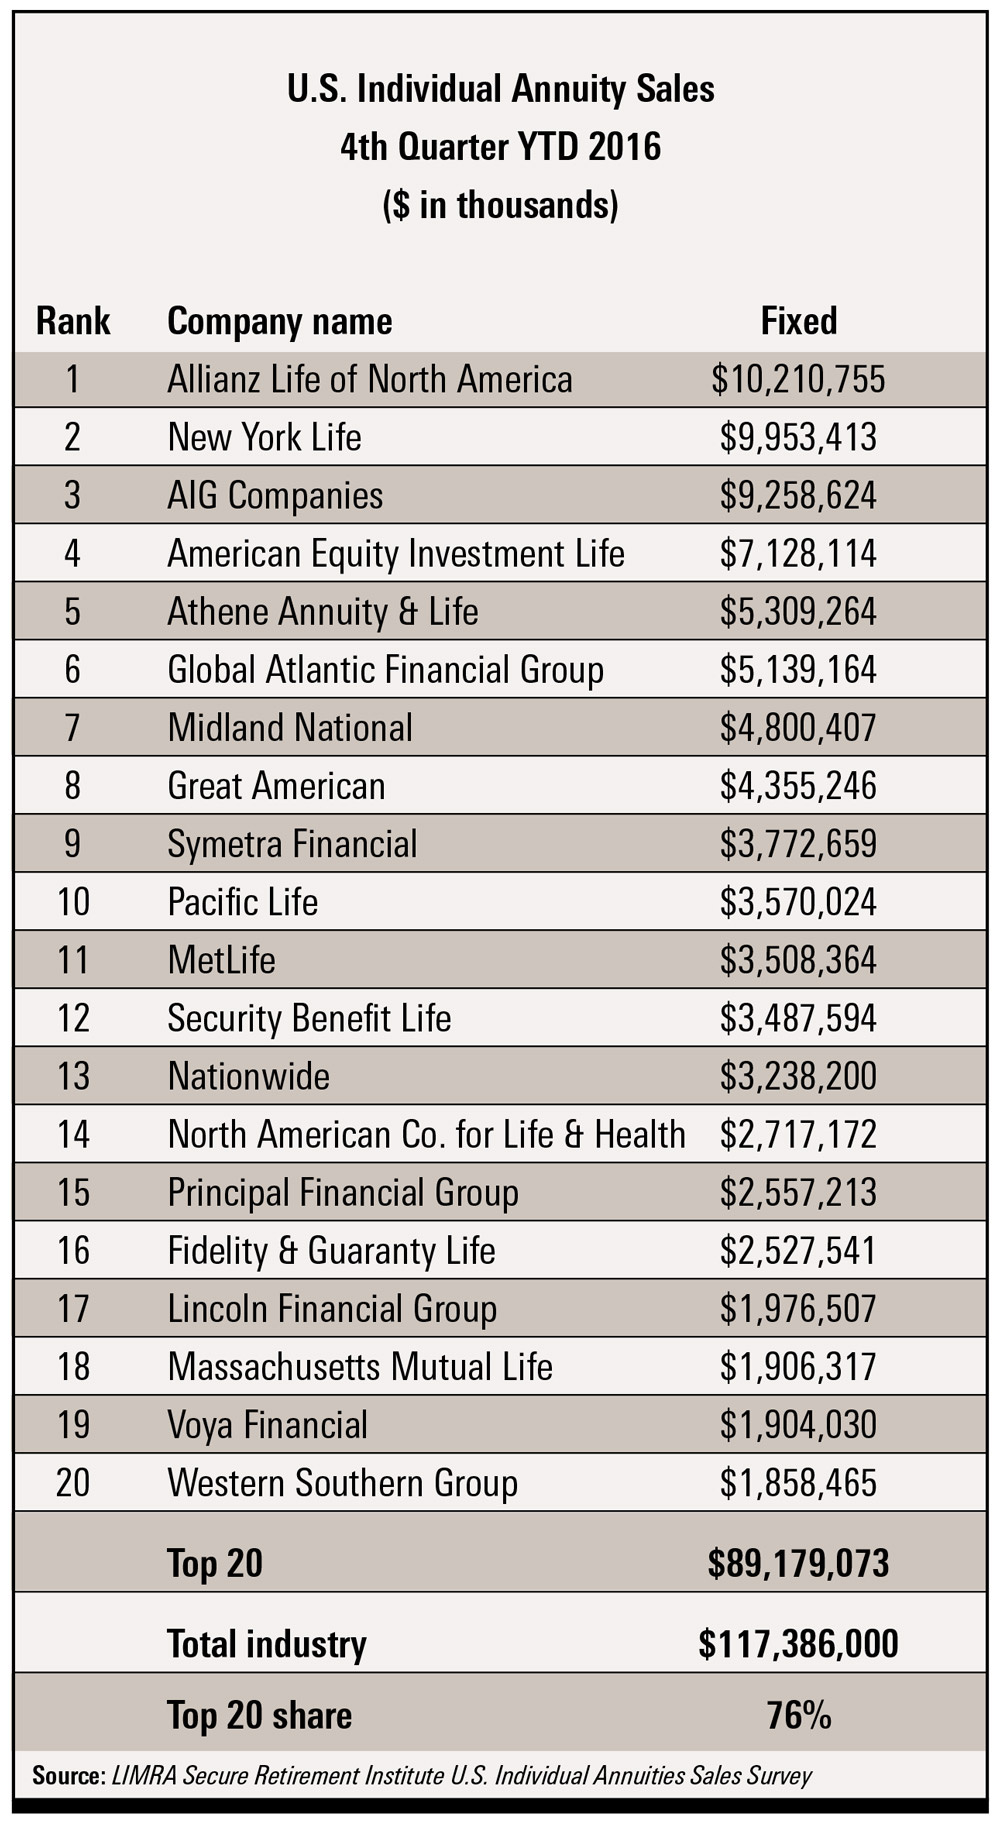 Top 20 Companies for Fixed Annuity Sales